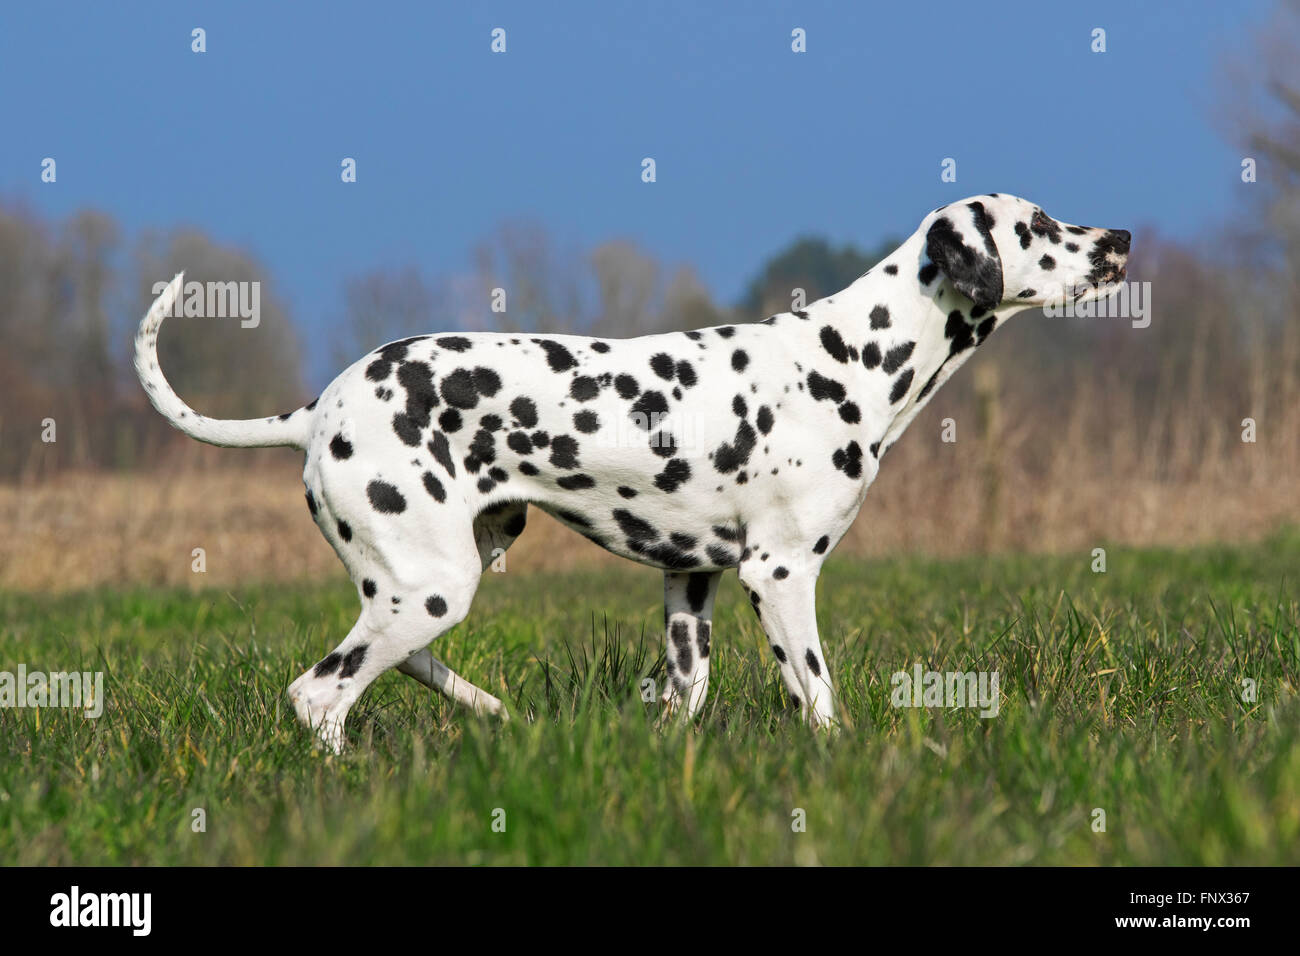 Dalmatian / carriage dog / spotted coach dog in field - Stock Image